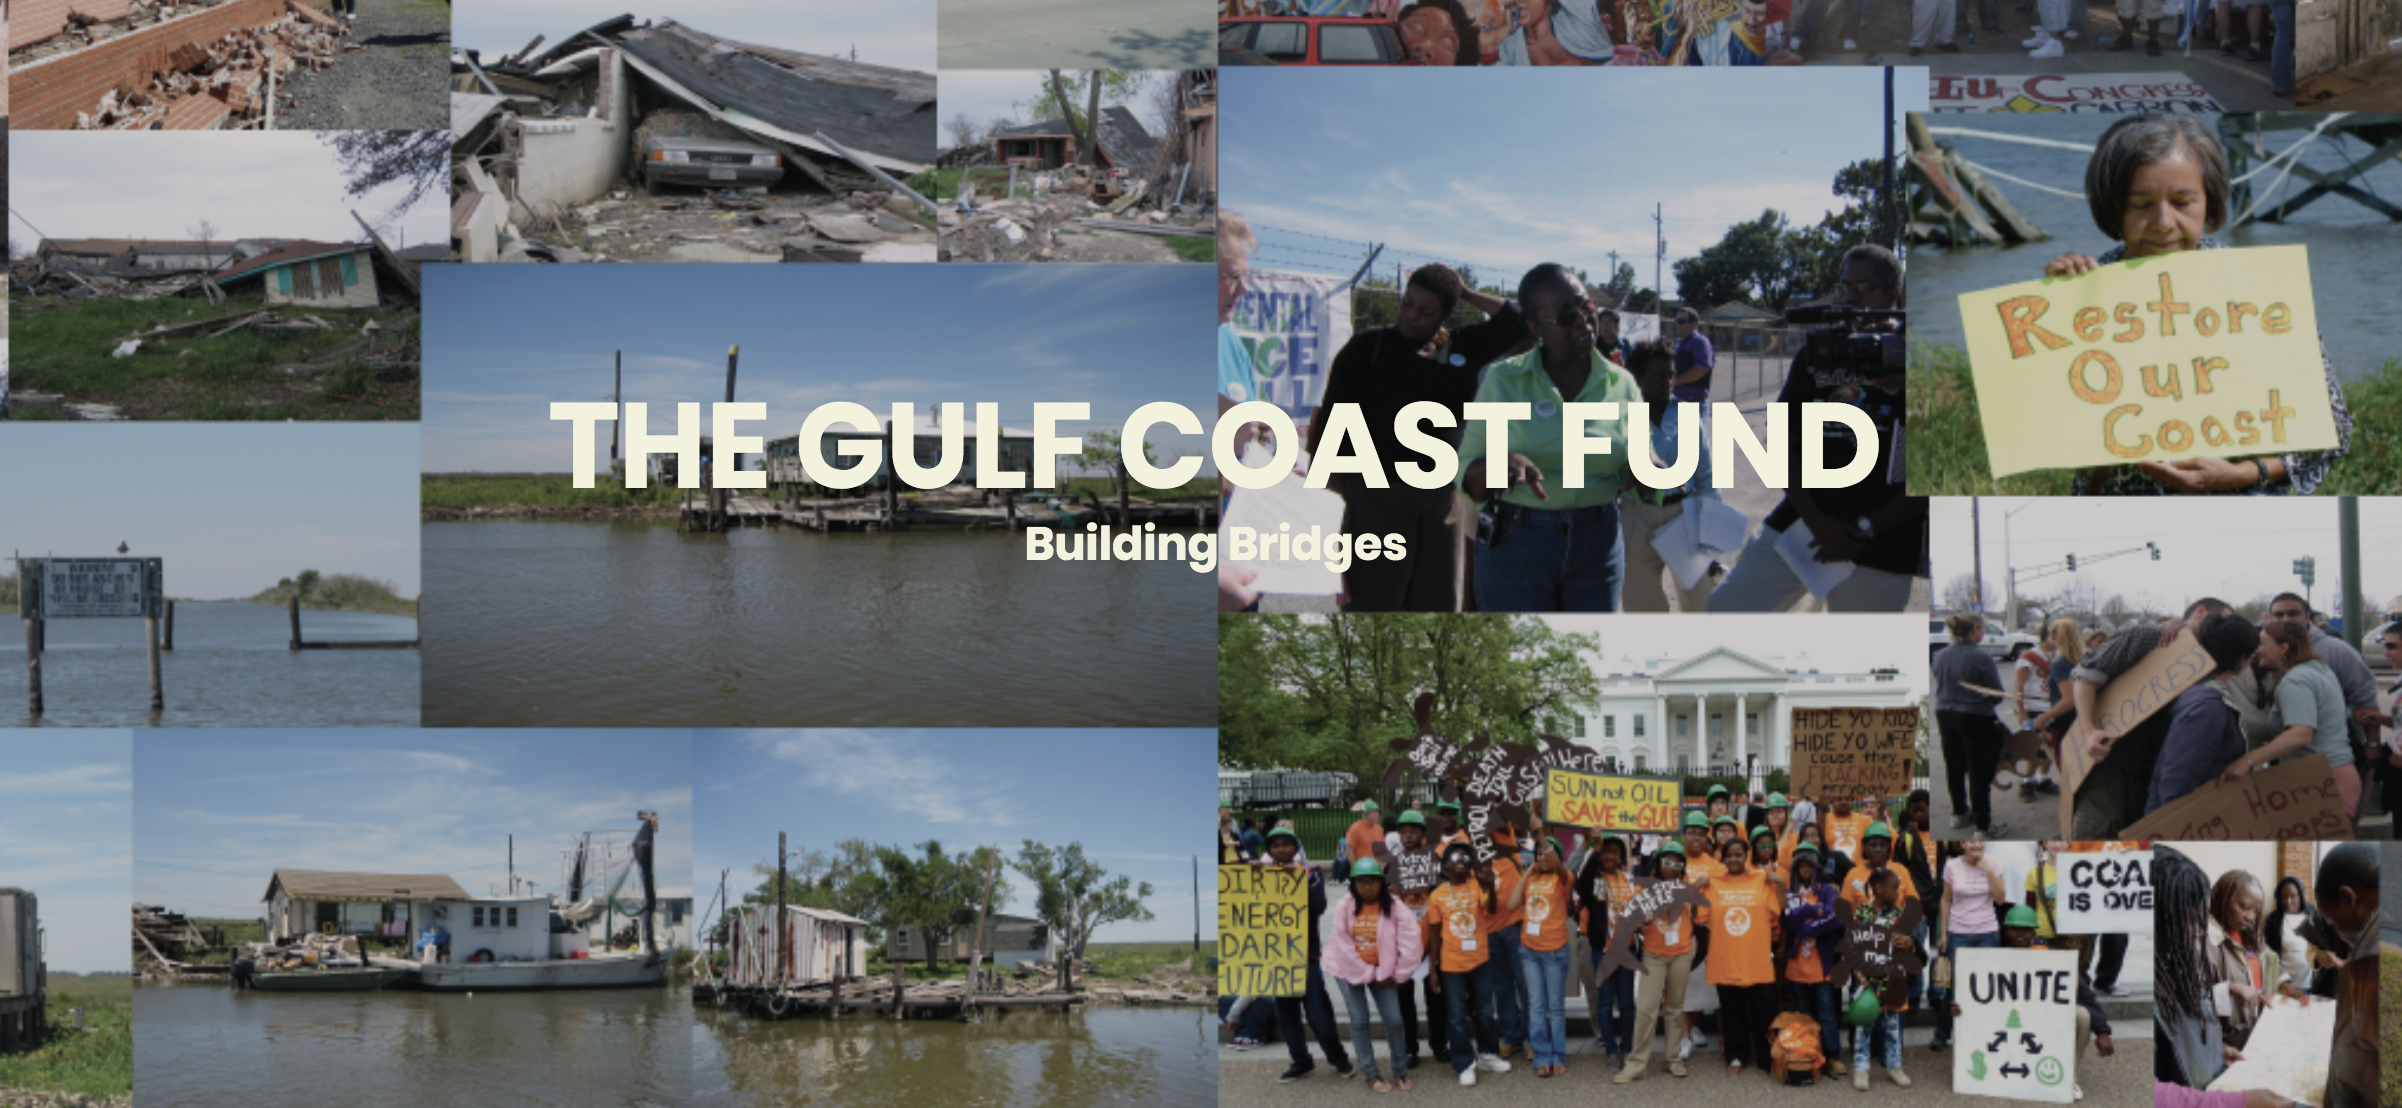 Gulf Coast Fund - The Gulf Coast Fund was created to resource, connect, and amplify the work of grassroots, community-based organizations from the most vulnerable communities and ecosystems. The Fund was led by an Advisory Group made up of community leaders engaged in work that addressed not only the effects of natural and human-made disasters in the region, but in social and environmental justice efforts that strengthened civil society in order to address the underlying inequality and ecological destruction that led to the severity of disasters in the Gulf Coast.